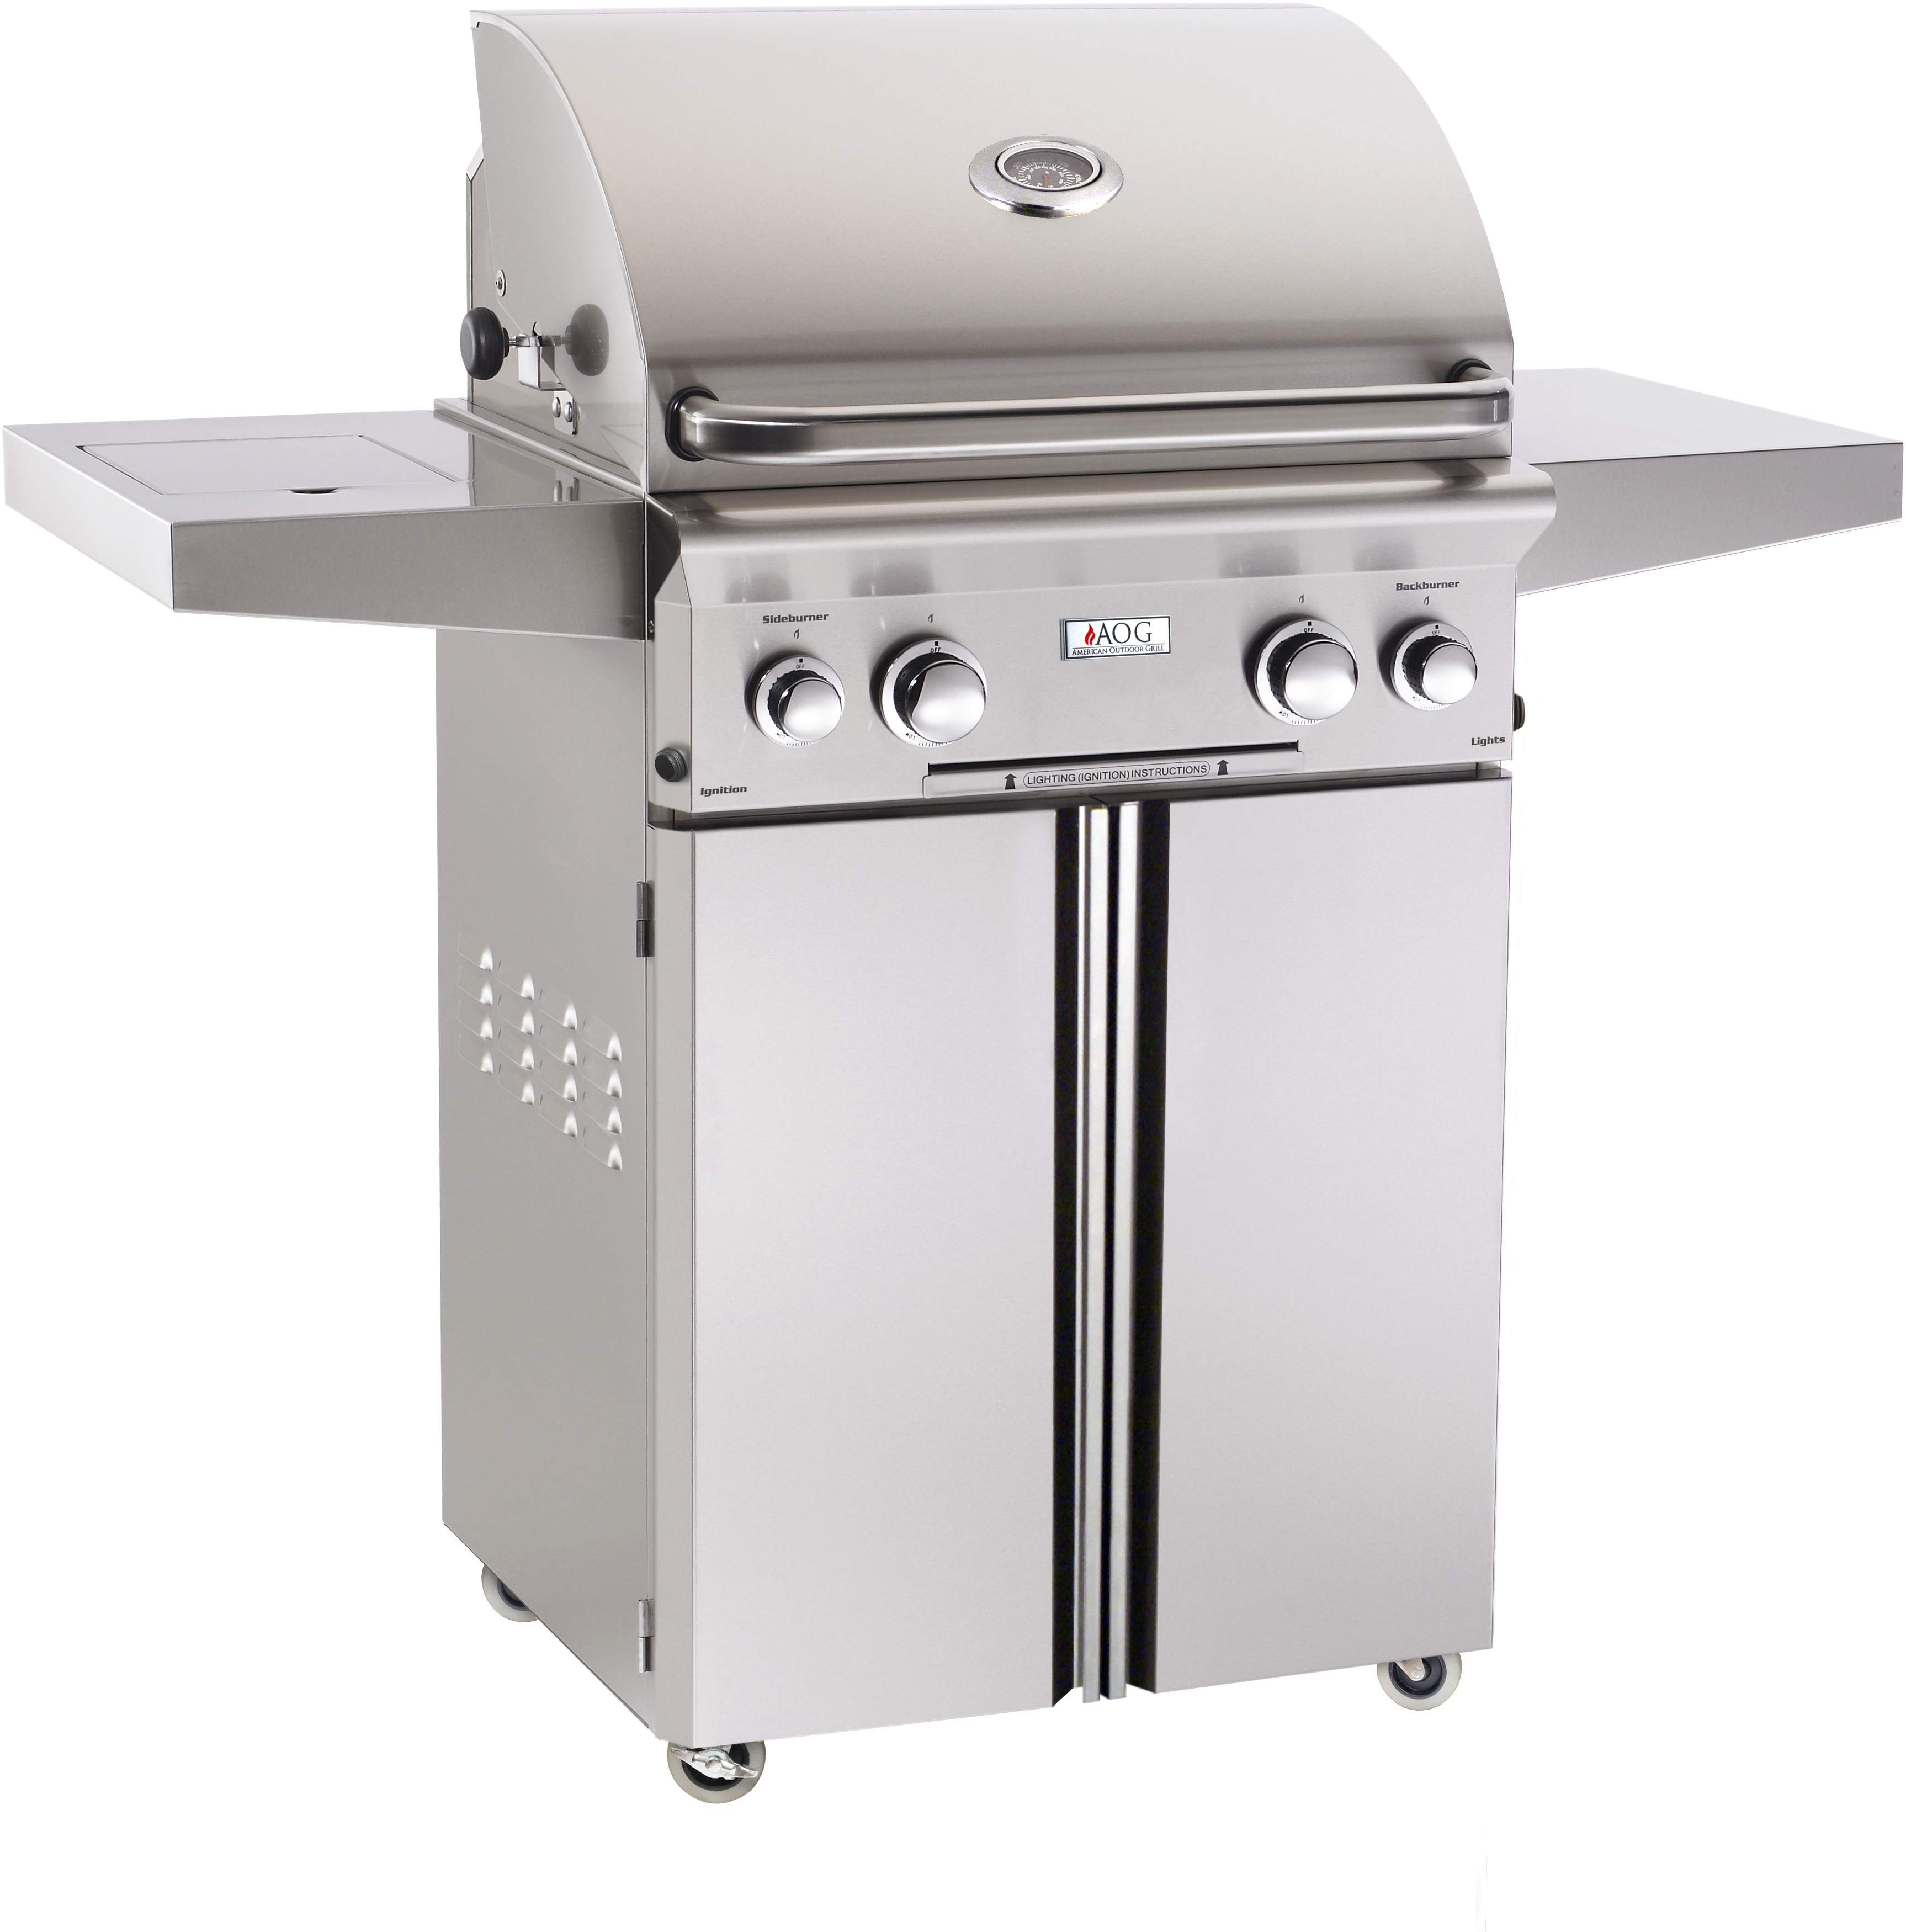 American Outdoor Grill sseries Freestanding Barbecue Grill Stainless Steel 24PCL00SP